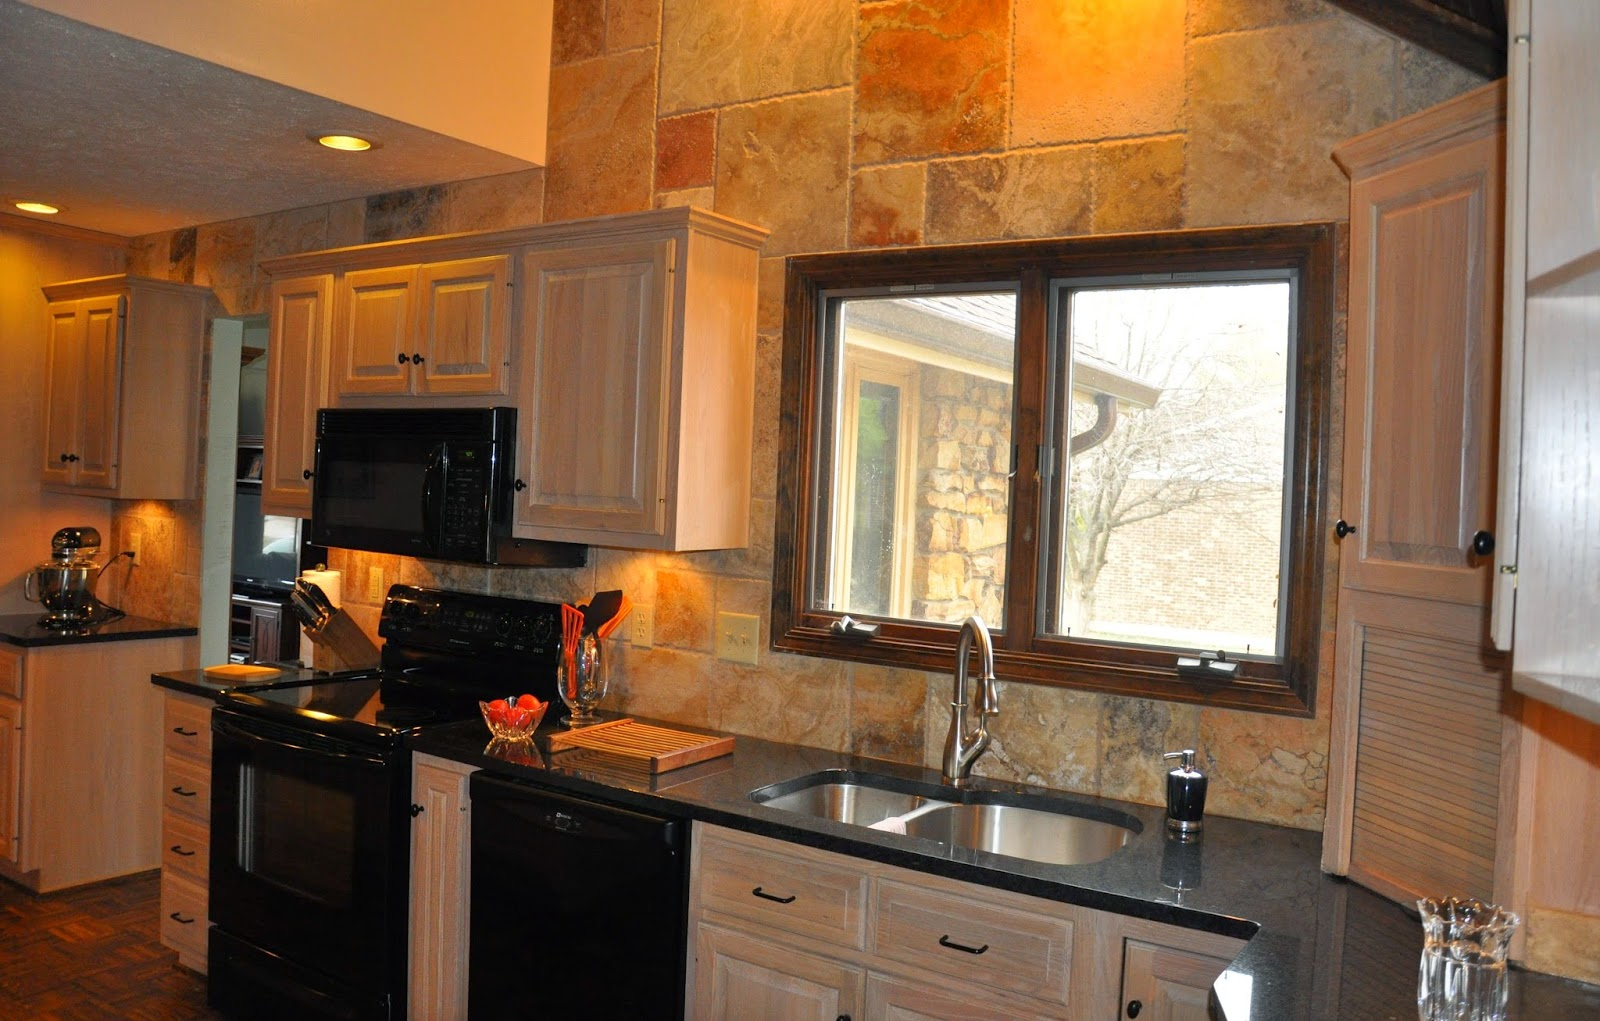 Kitchen Tile Backsplash Ideas with Granite Countertops